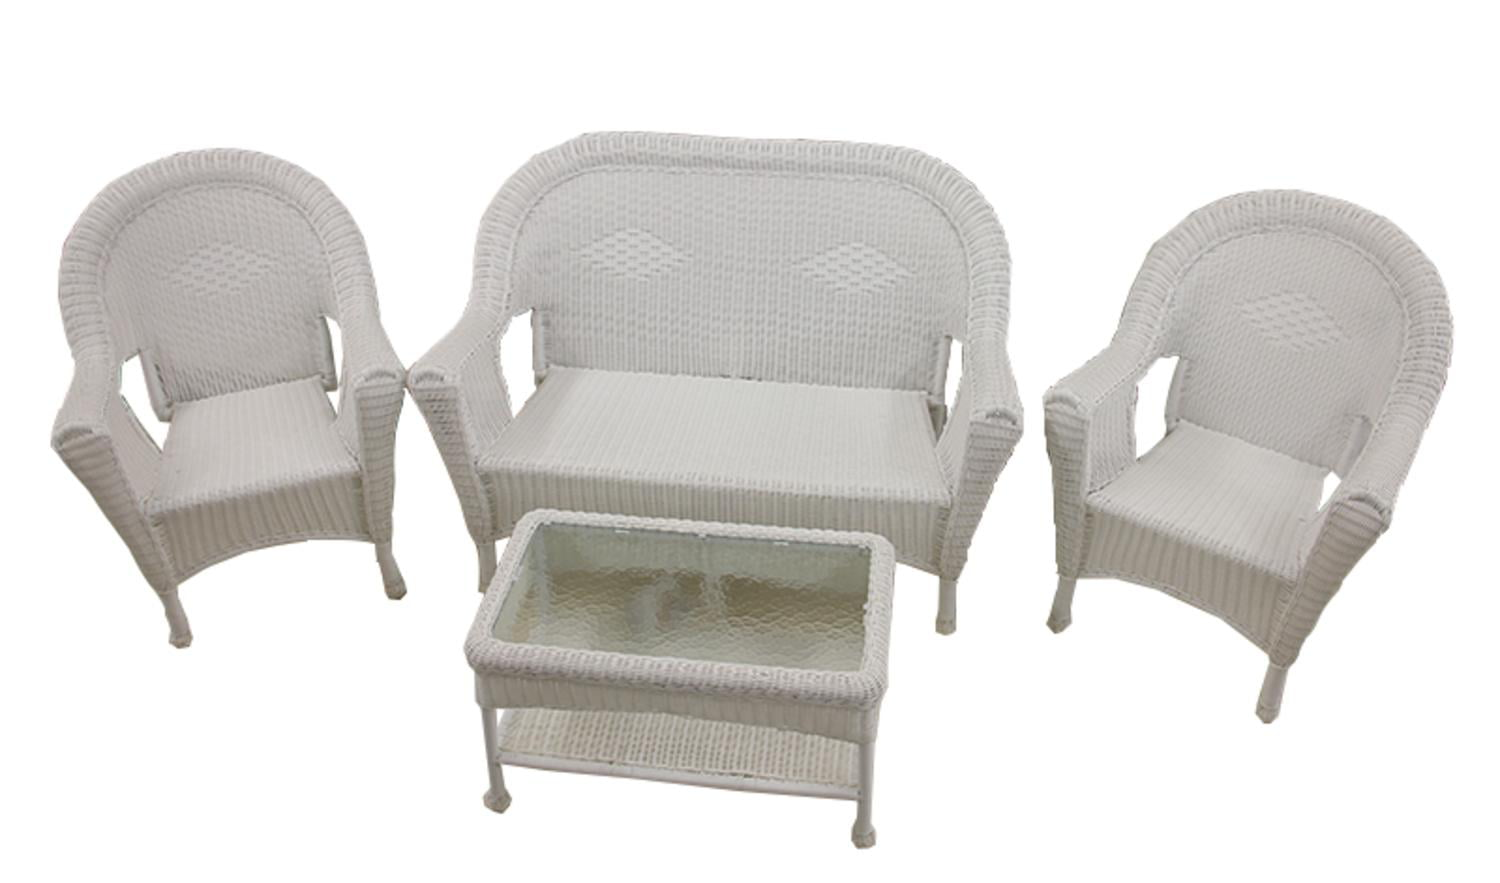 wicker decors furniture patio treatment of image ideas white creation and